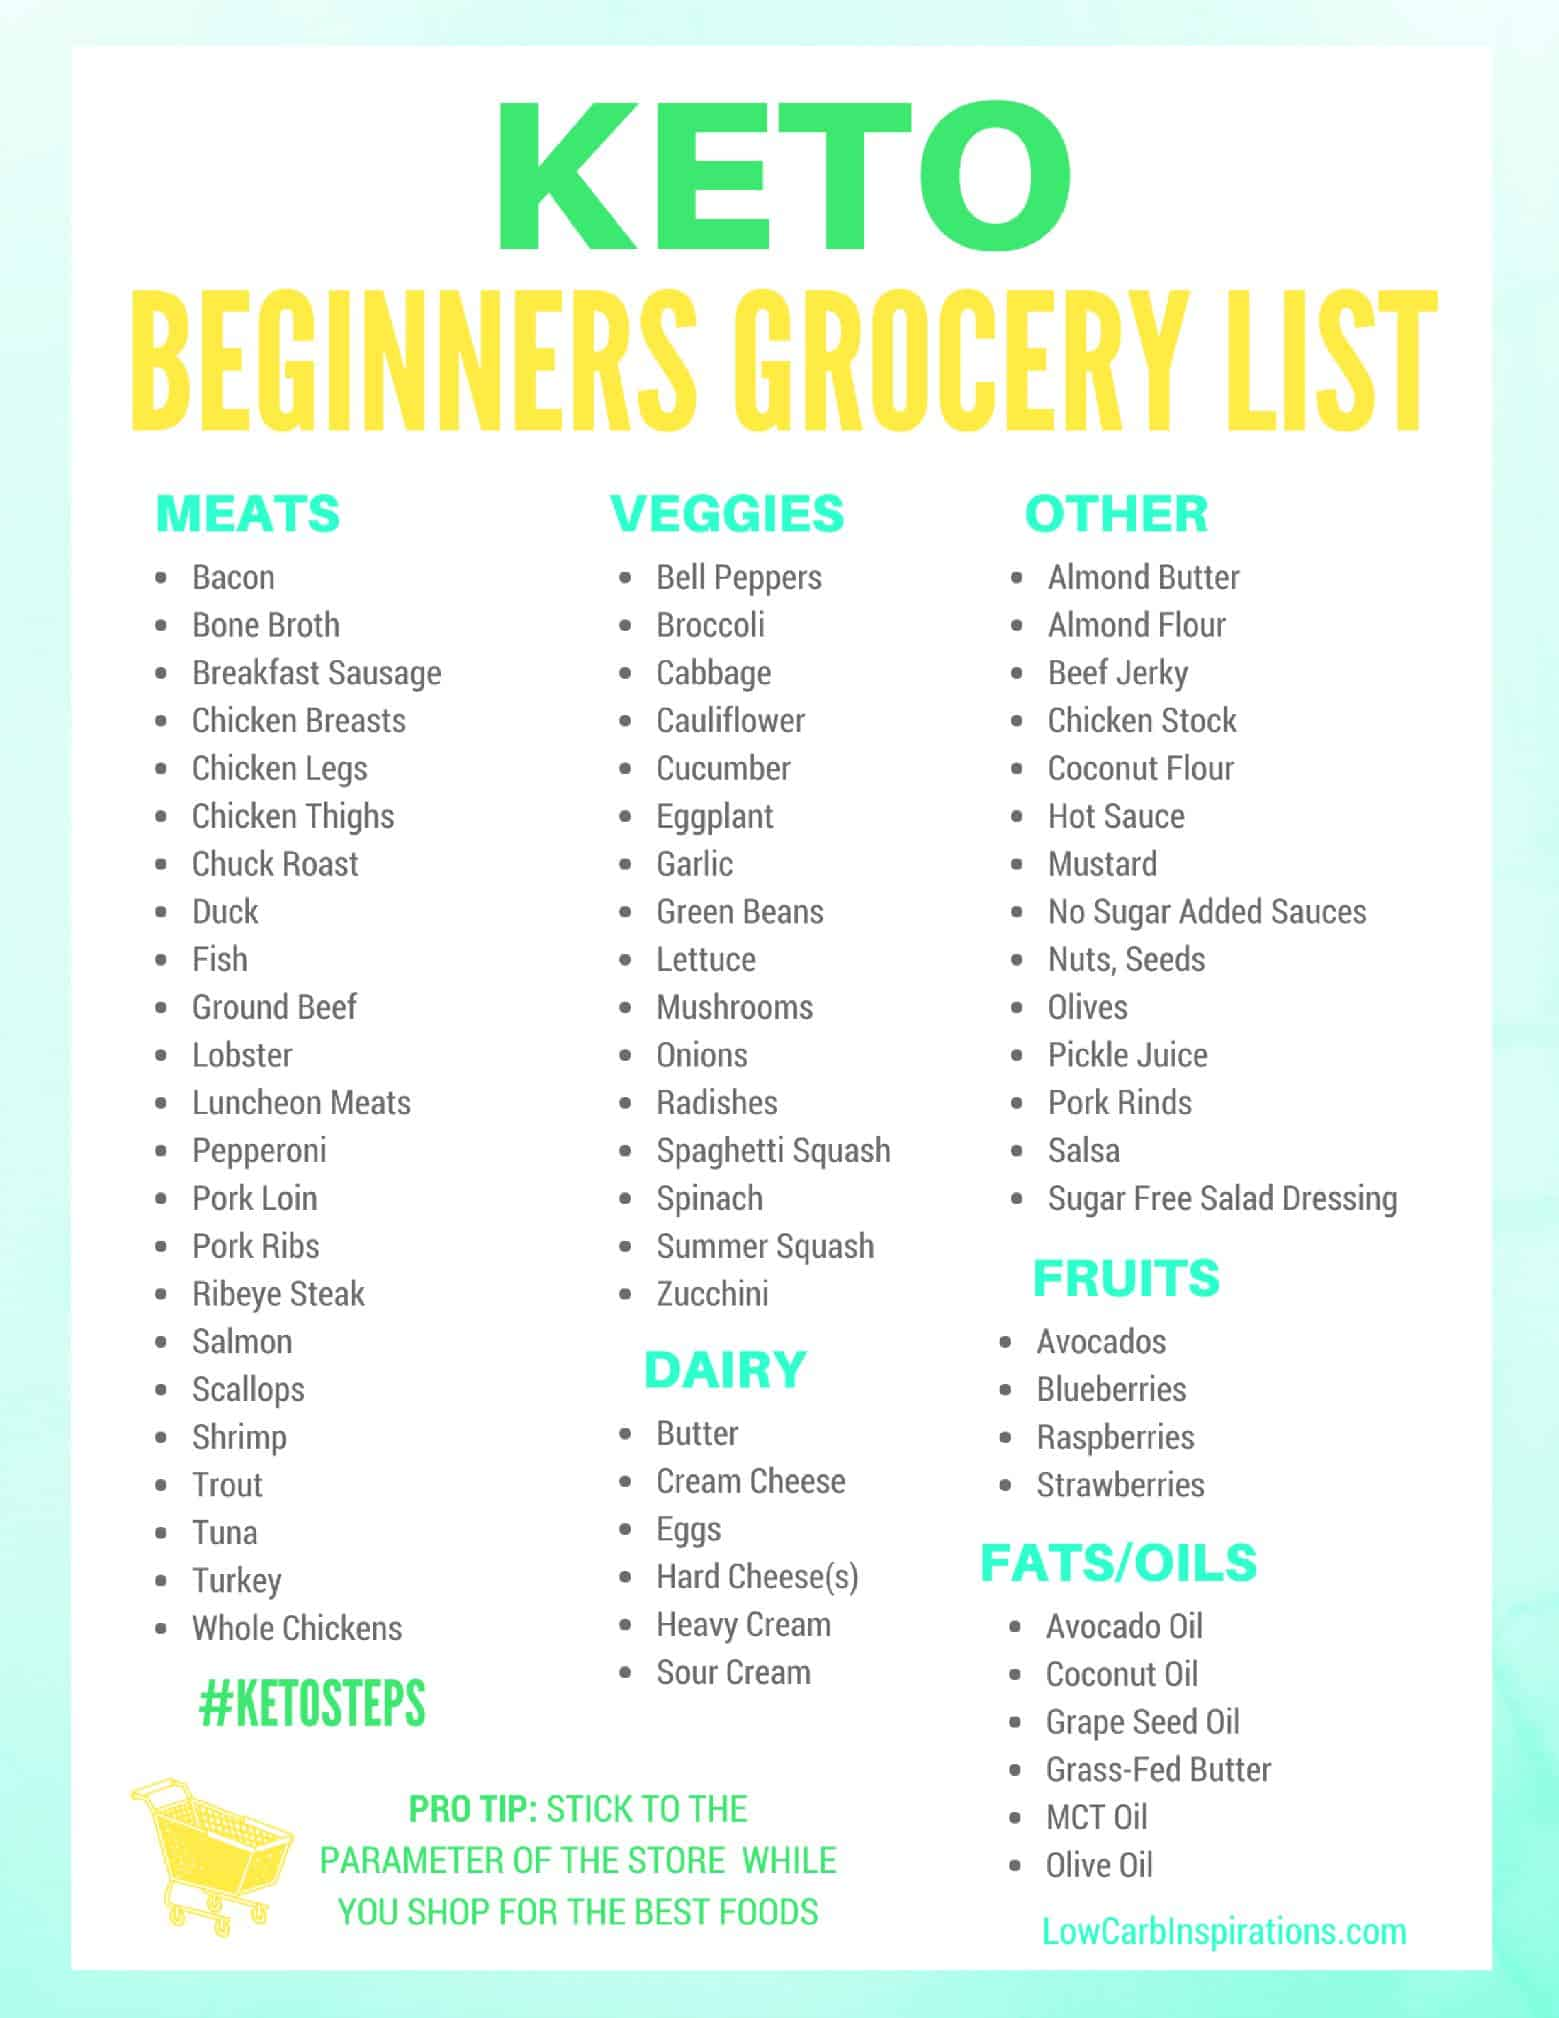 Keto Grocery List for Beginners - iSaveA2Z.com